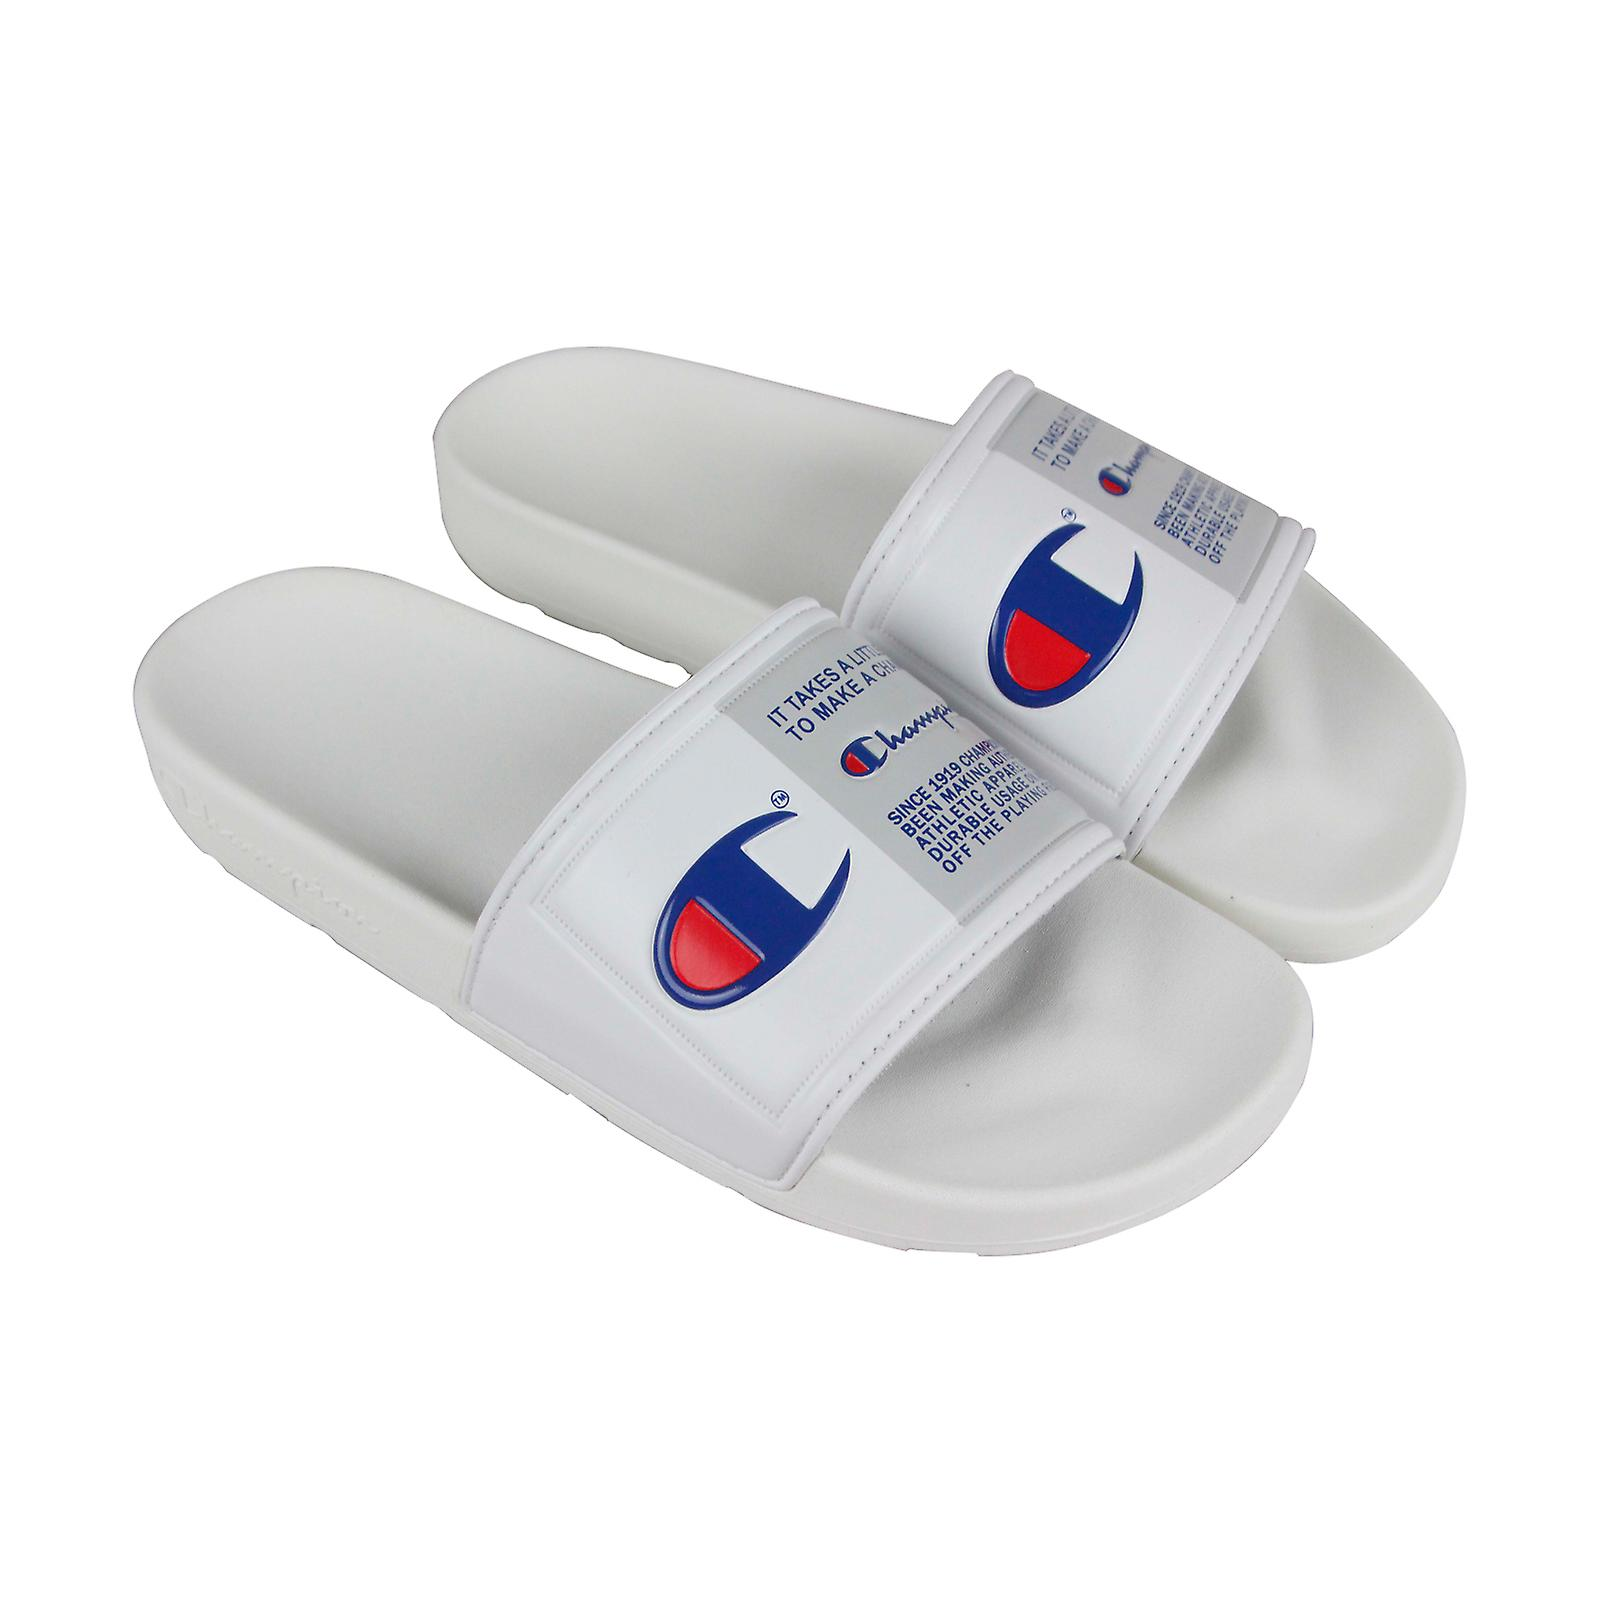 d683020fd6be4 Champion Ipo Jock Mens White Synthetic Slides Slip On Sandals Shoes ...